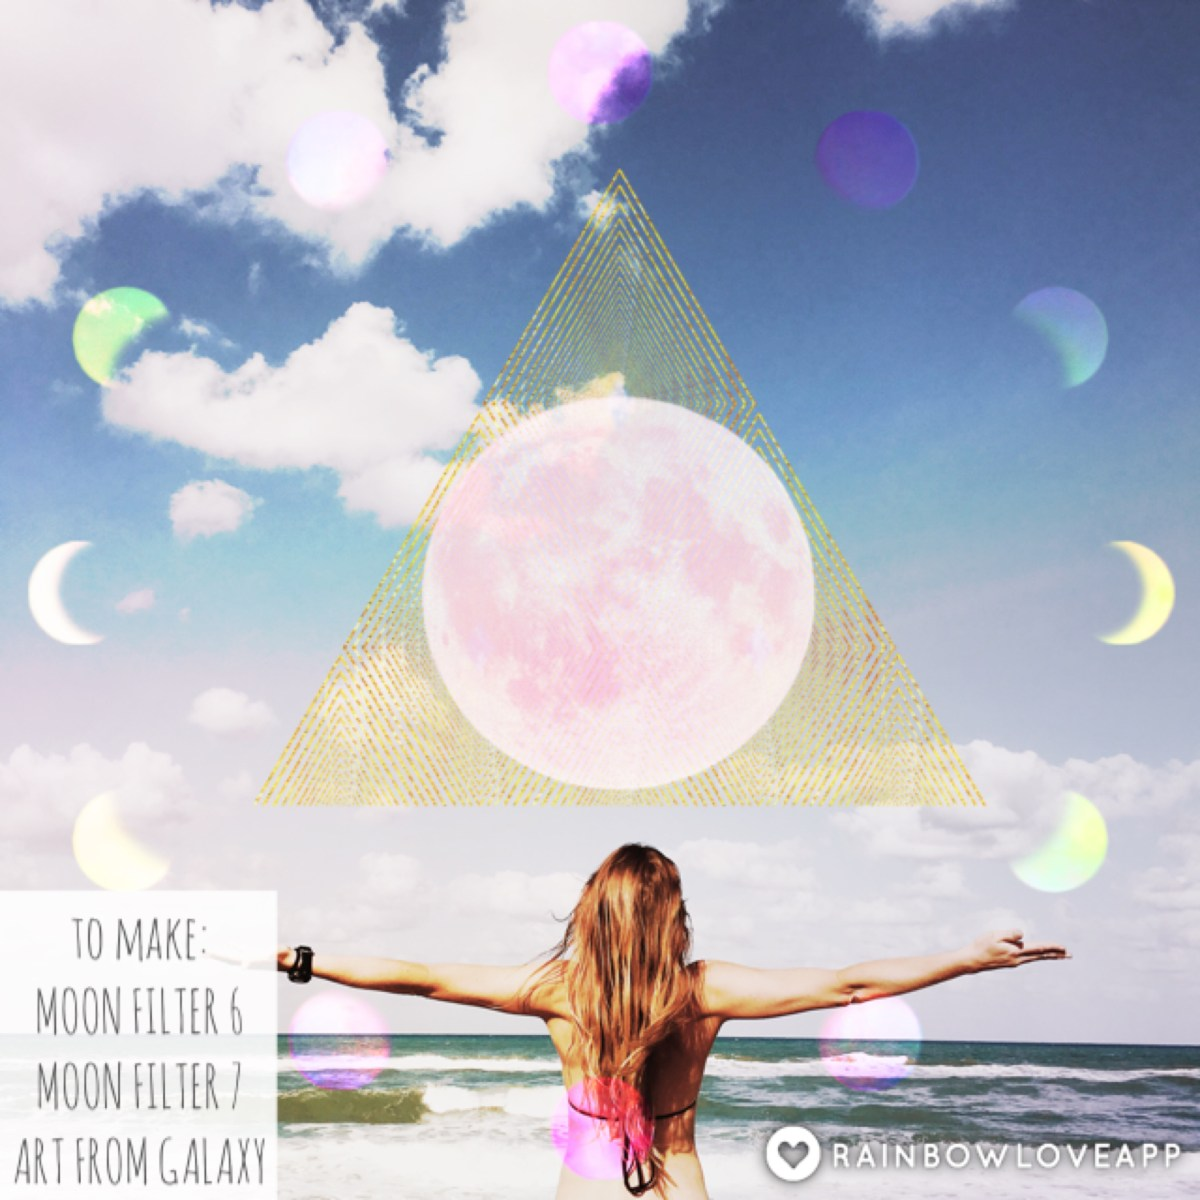 rainbow-love-app-moon-filters-and-moon-art-best-photo-editing-apps